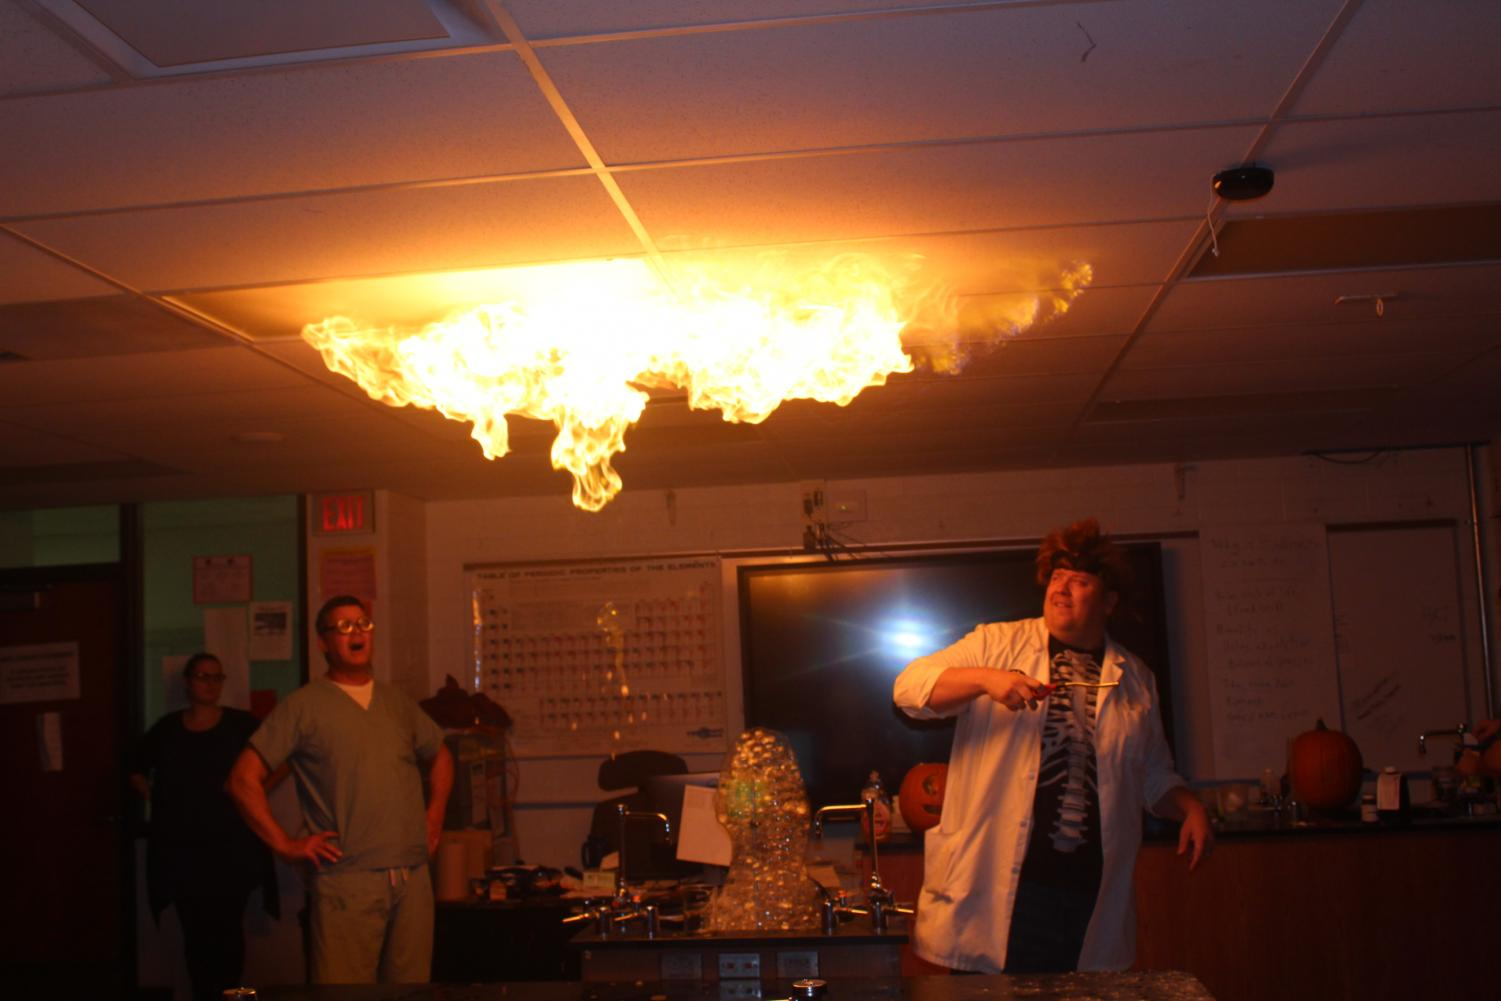 Biology teacher Bob Smitka lights bubbles in the air that cause a ripple effect across the ceiling.